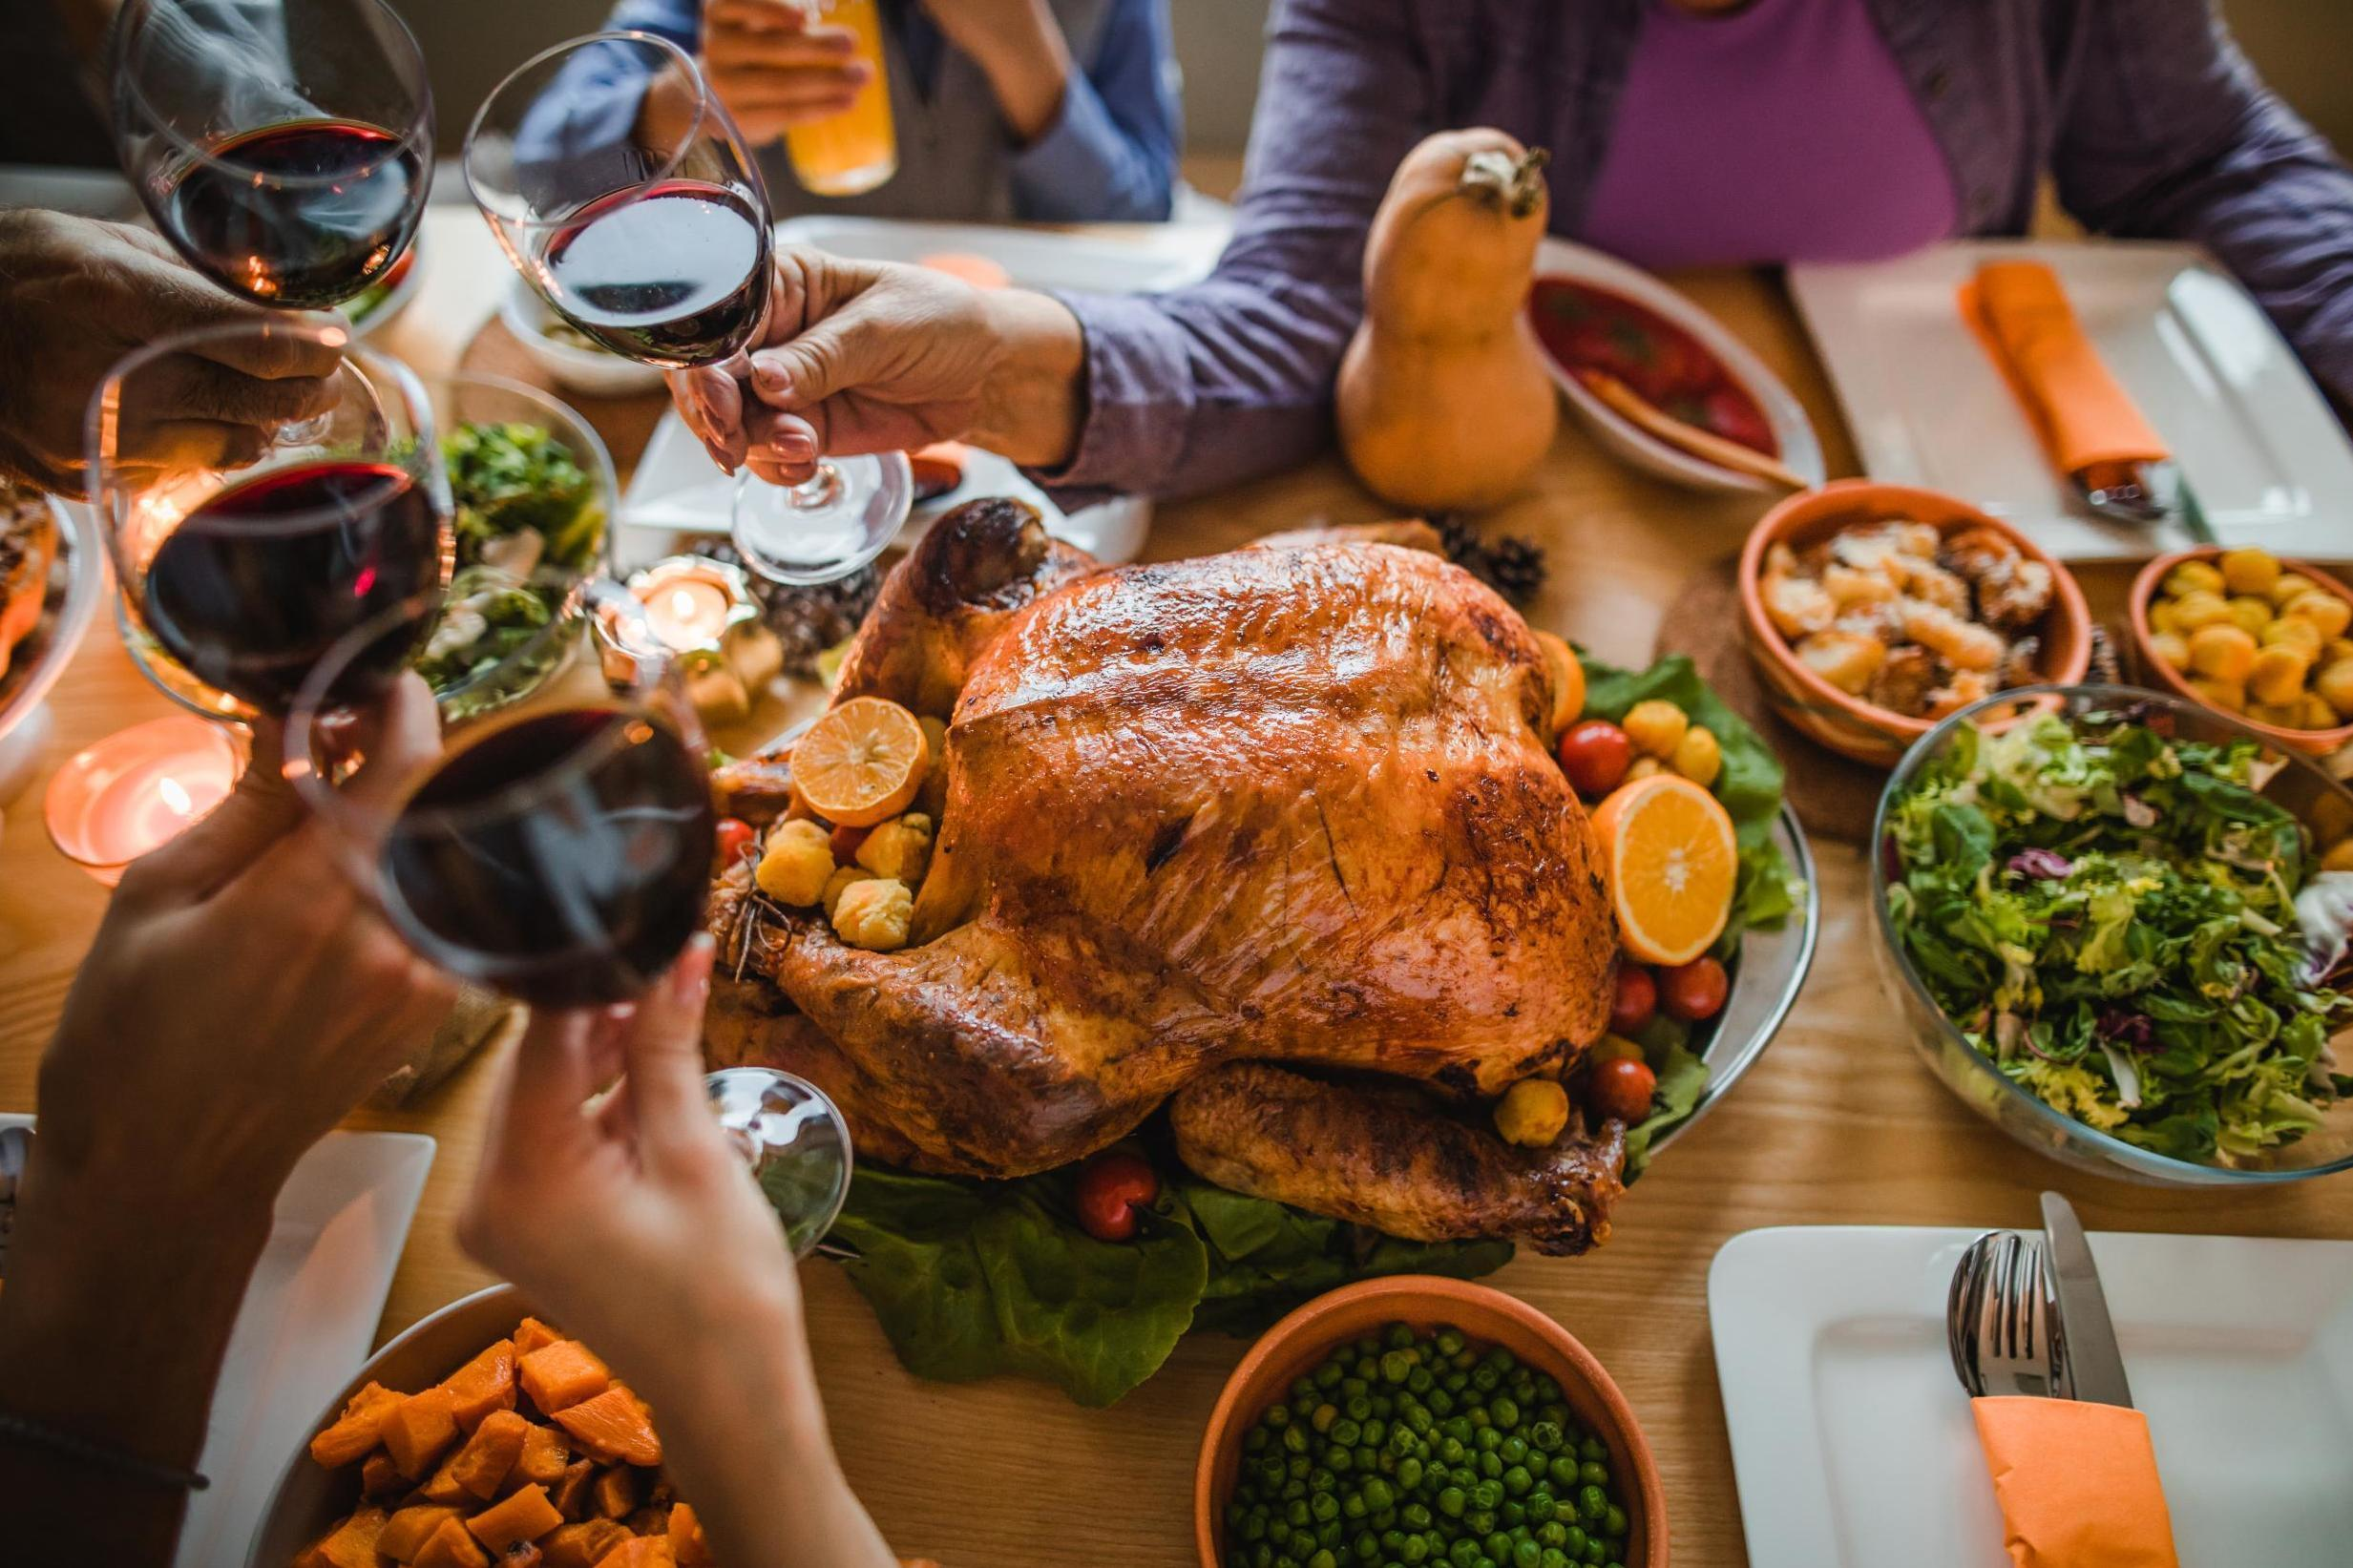 Thanksgiving cooking tips: How to fix 6 common fails, according to experts 1